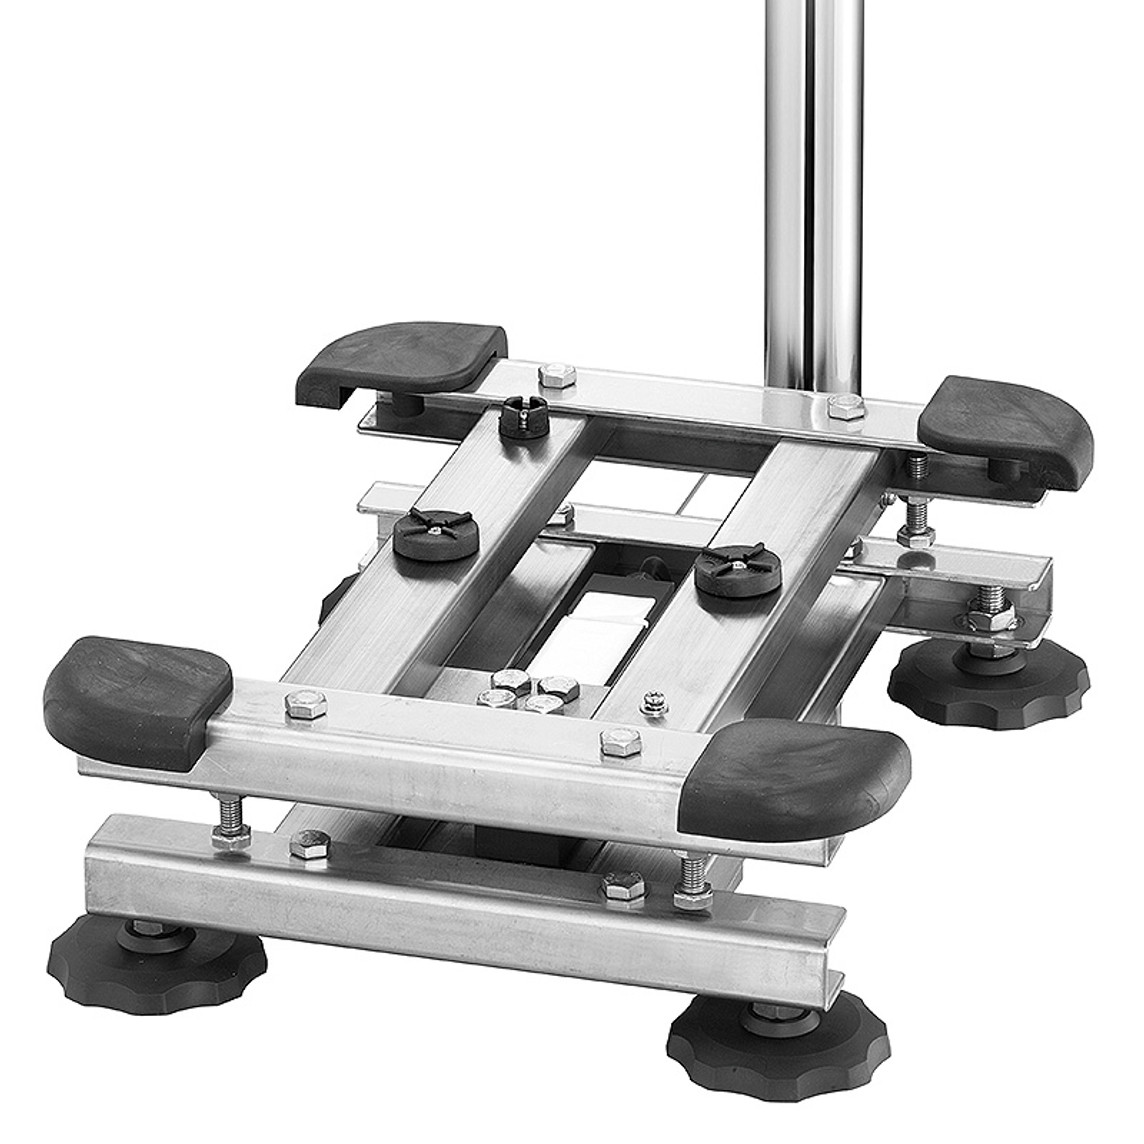 A&D SC IP68 Stainless Steel Trade Approved Platform Scale